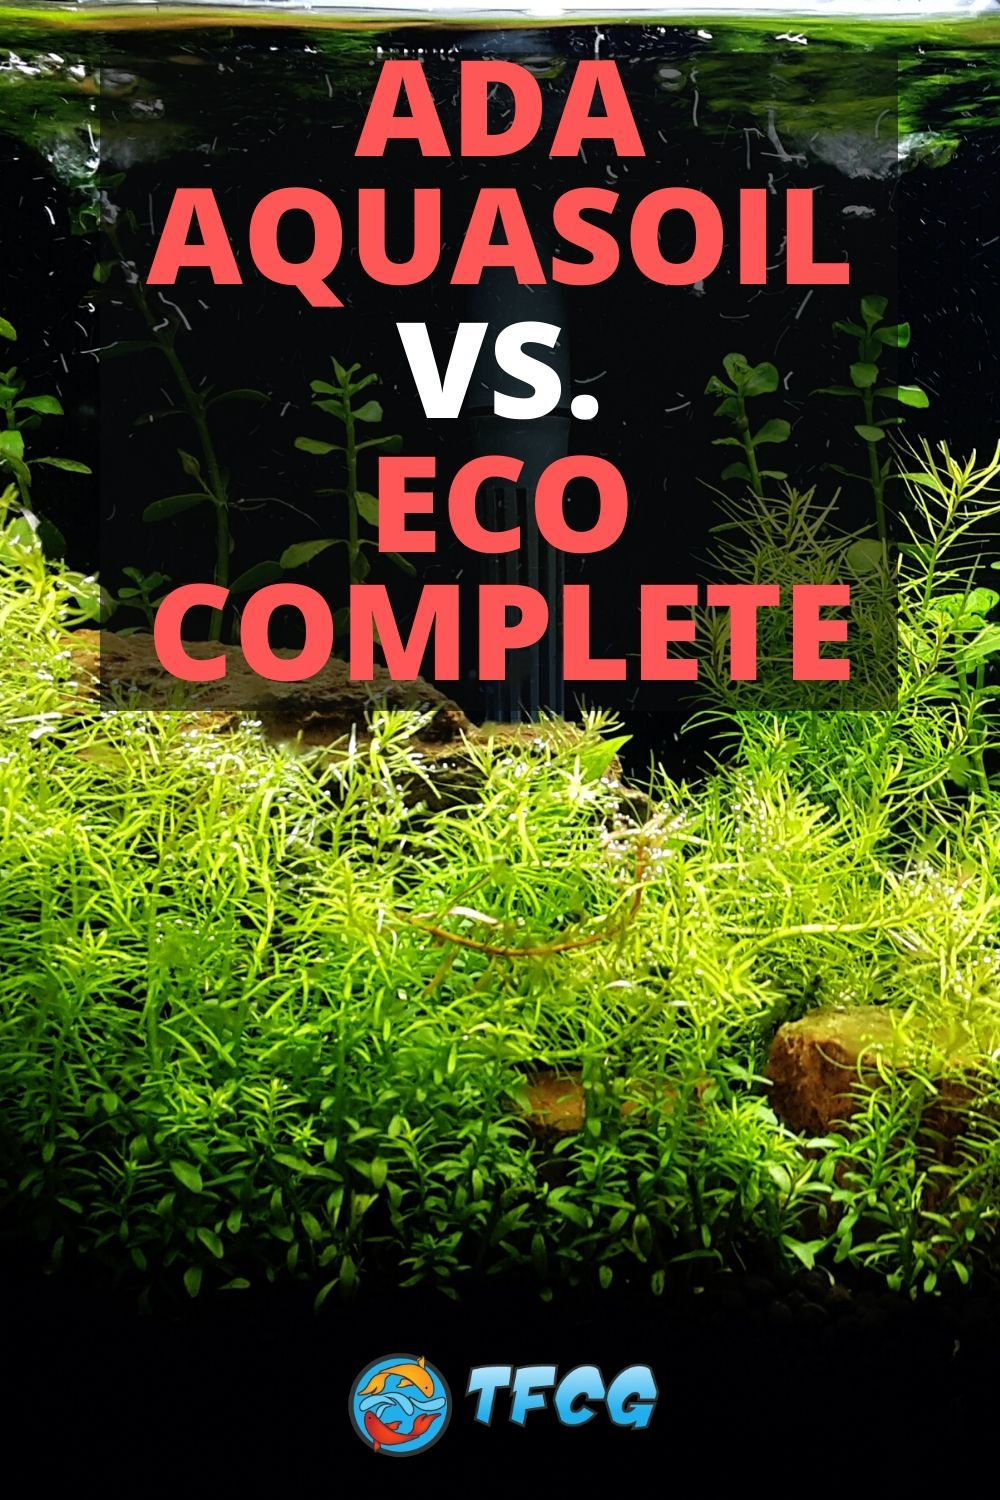 ADA Aquasoil vs. Eco Complete